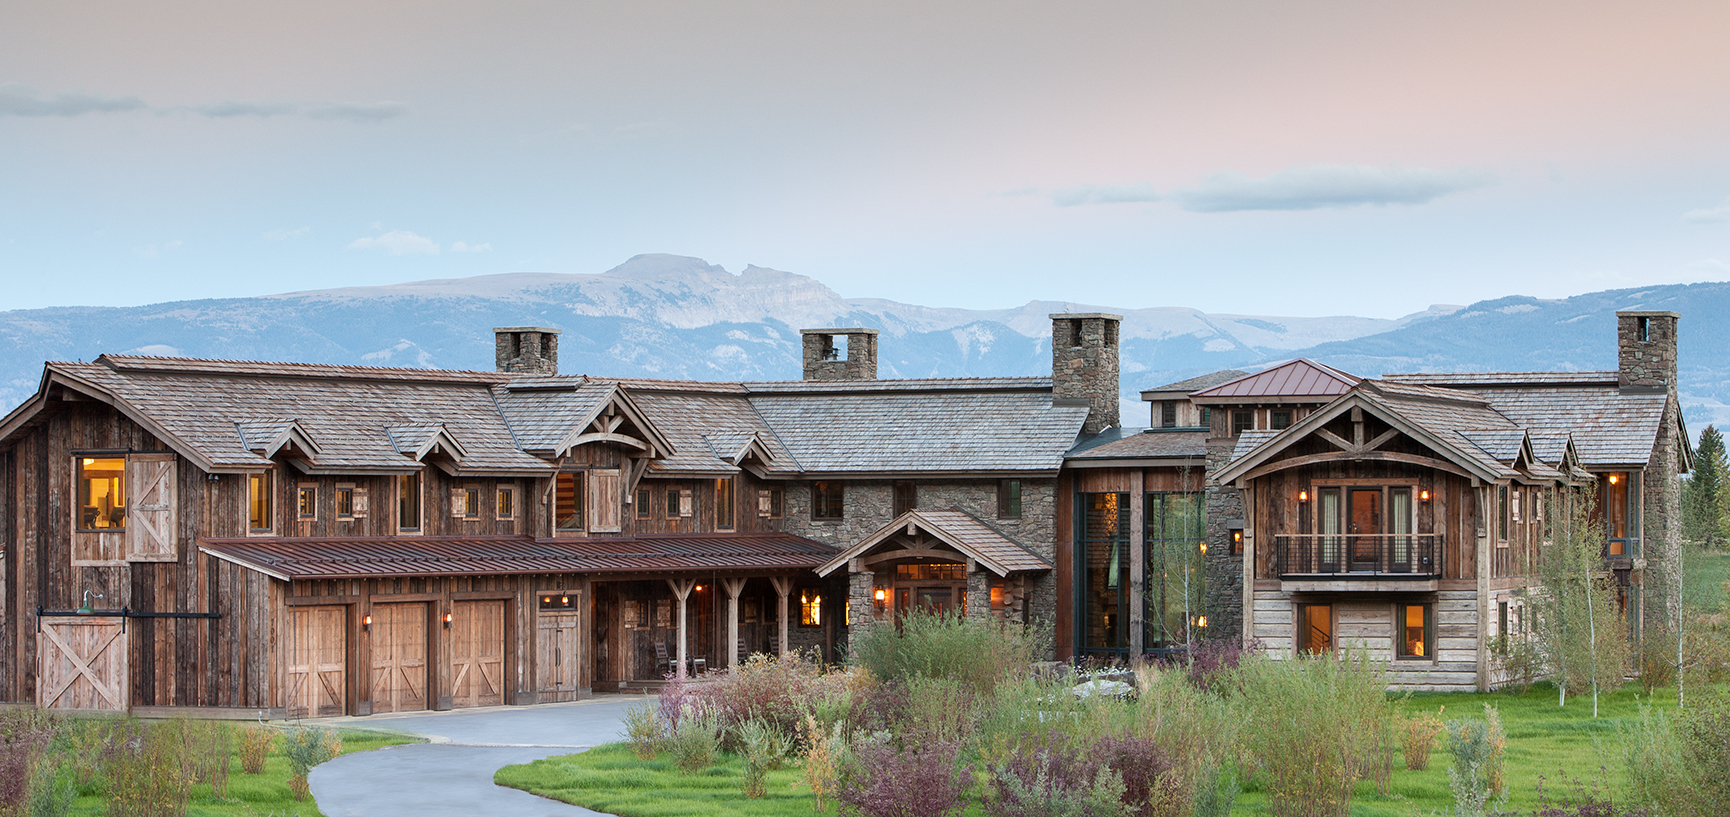 This is an exterior elevation photo of a private residence at Shooting Star in Jackson Wyoming. The house is large and rustic with a raw or reclaimed timber lok to it and has a view of Jackson's Sleeping Indian behind.Architectural Photography by: Paul Richer / RICHER IMAGES